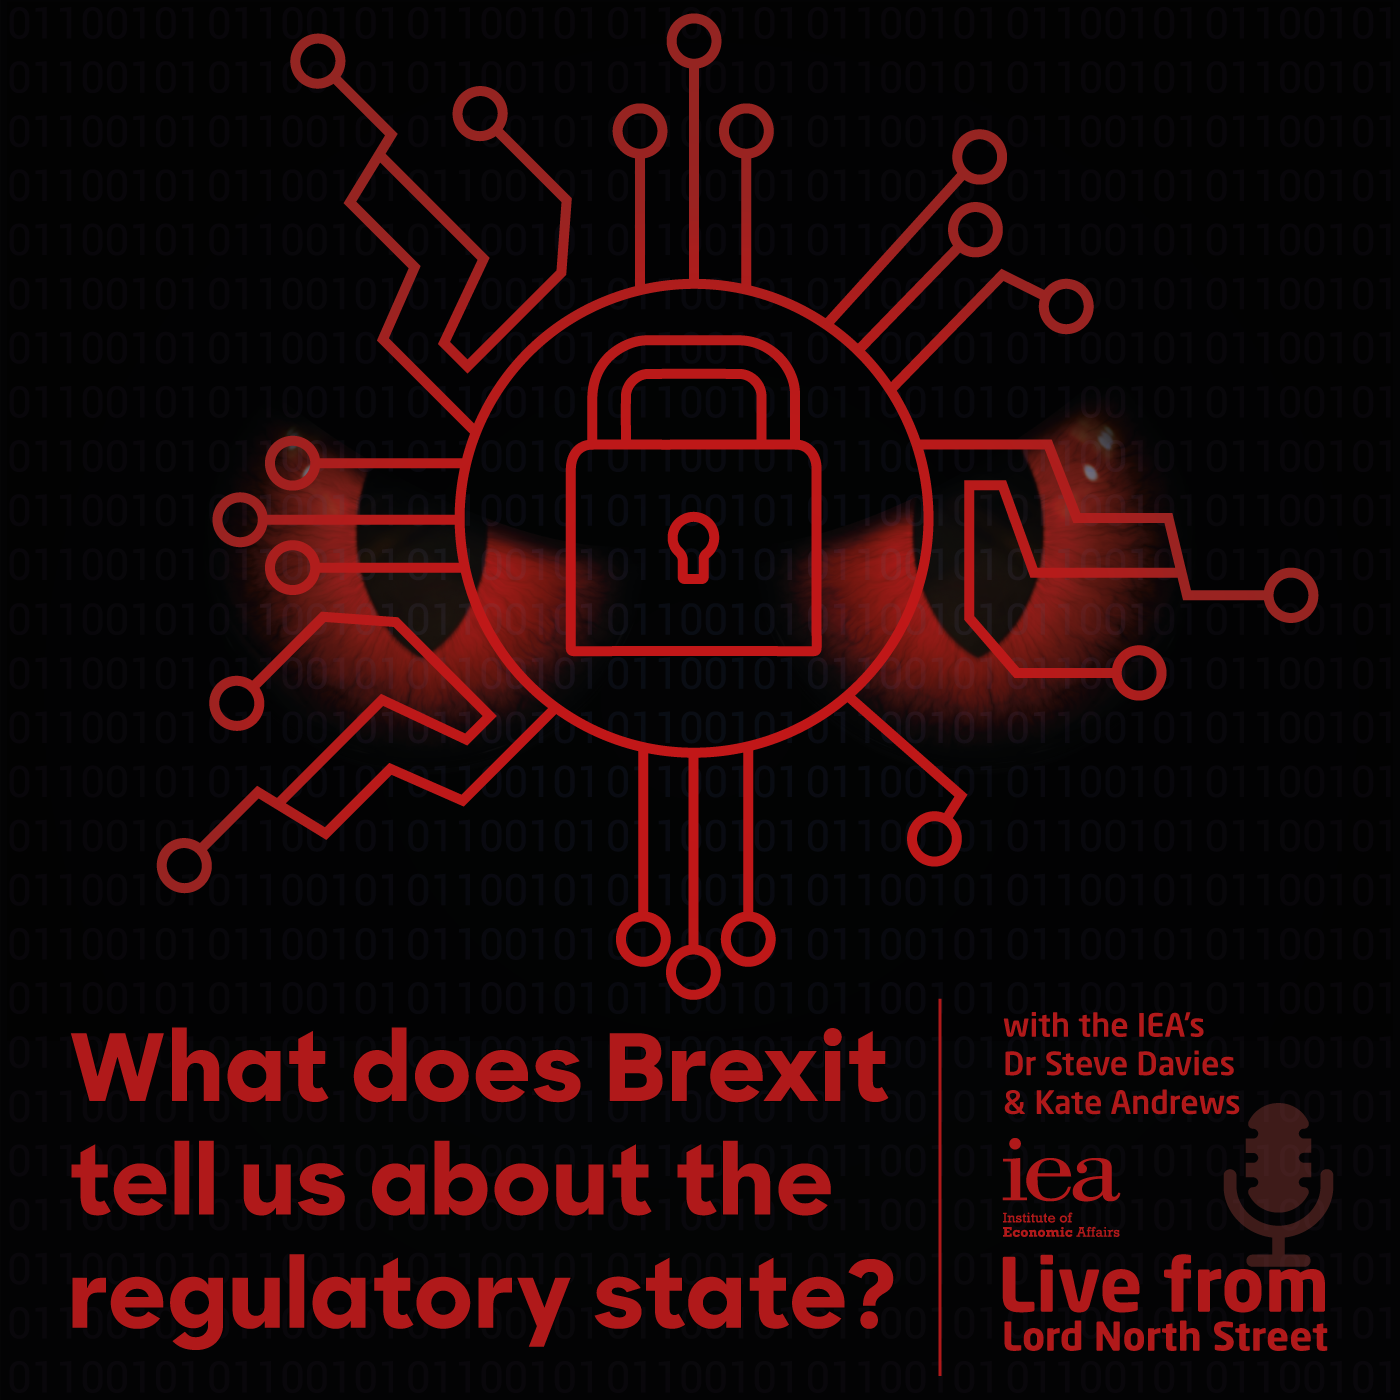 What does Brexit tell us about the regulatory state?